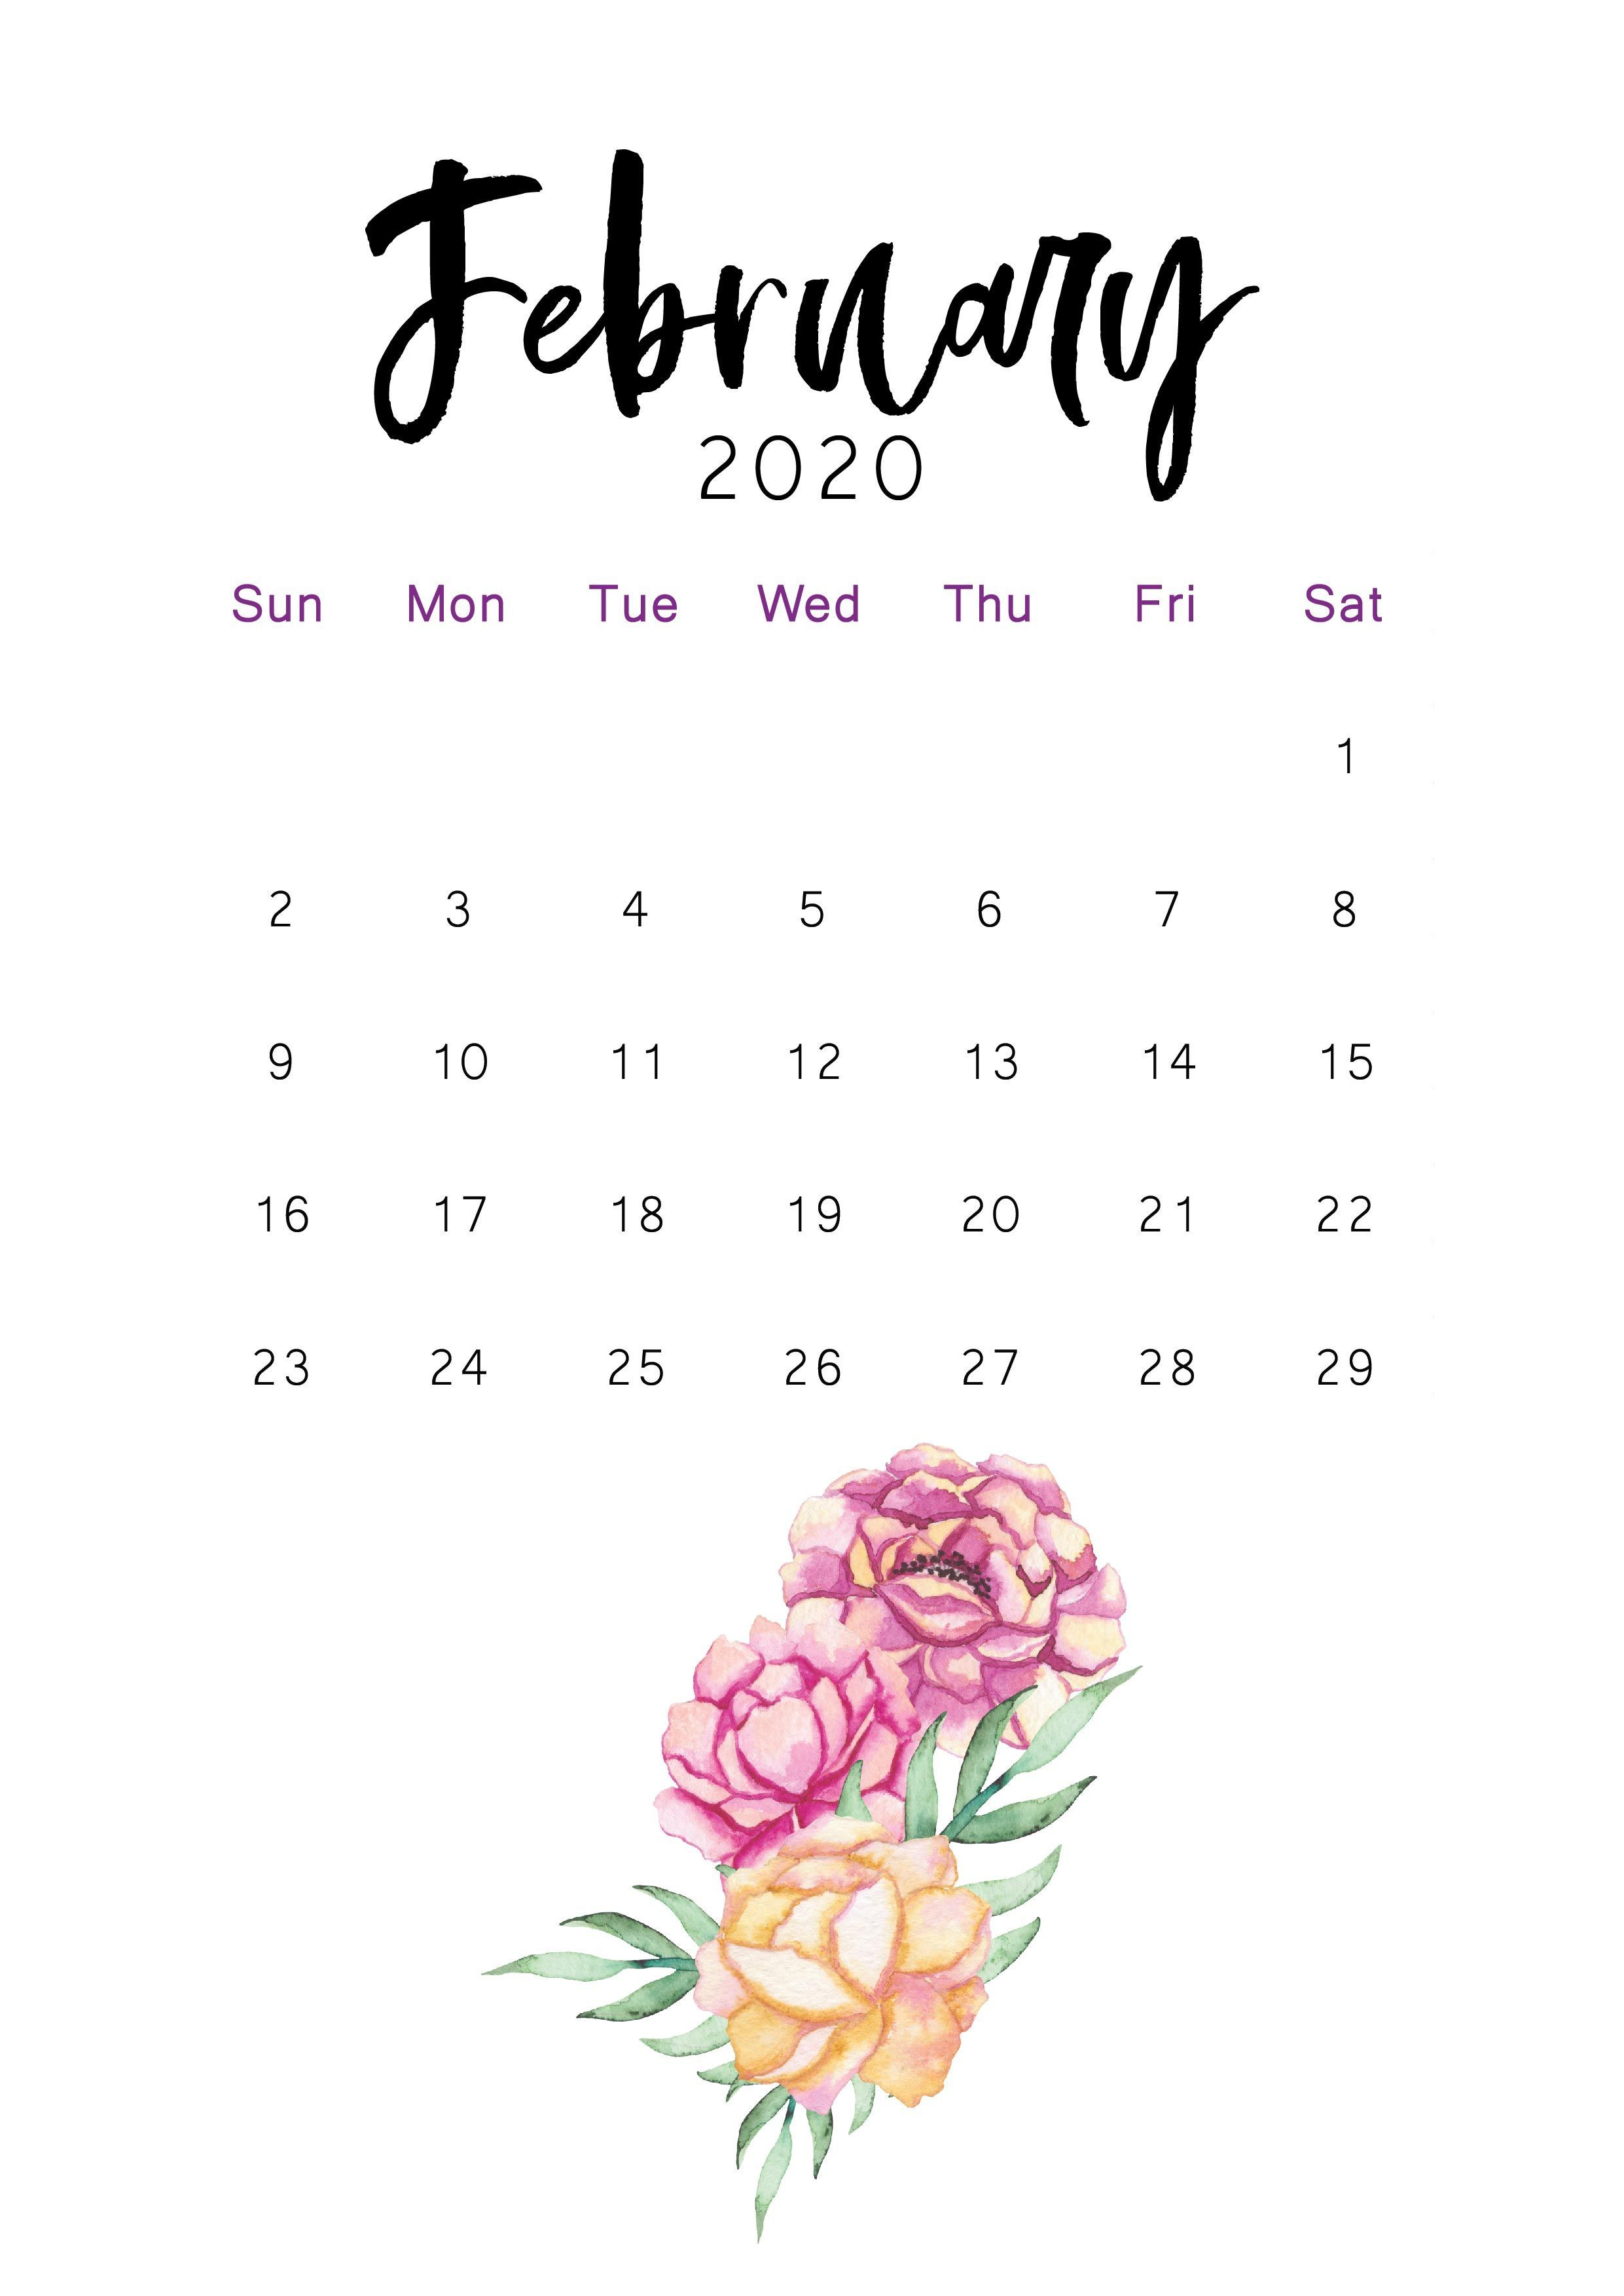 Latest Free 2020 Calendar Cactus Suggestions A Custom Made Schedules Are Made To Supply Your Online Business A Method To Ad Di 2020 Objek Gambar Gambar Kata Kata Indah